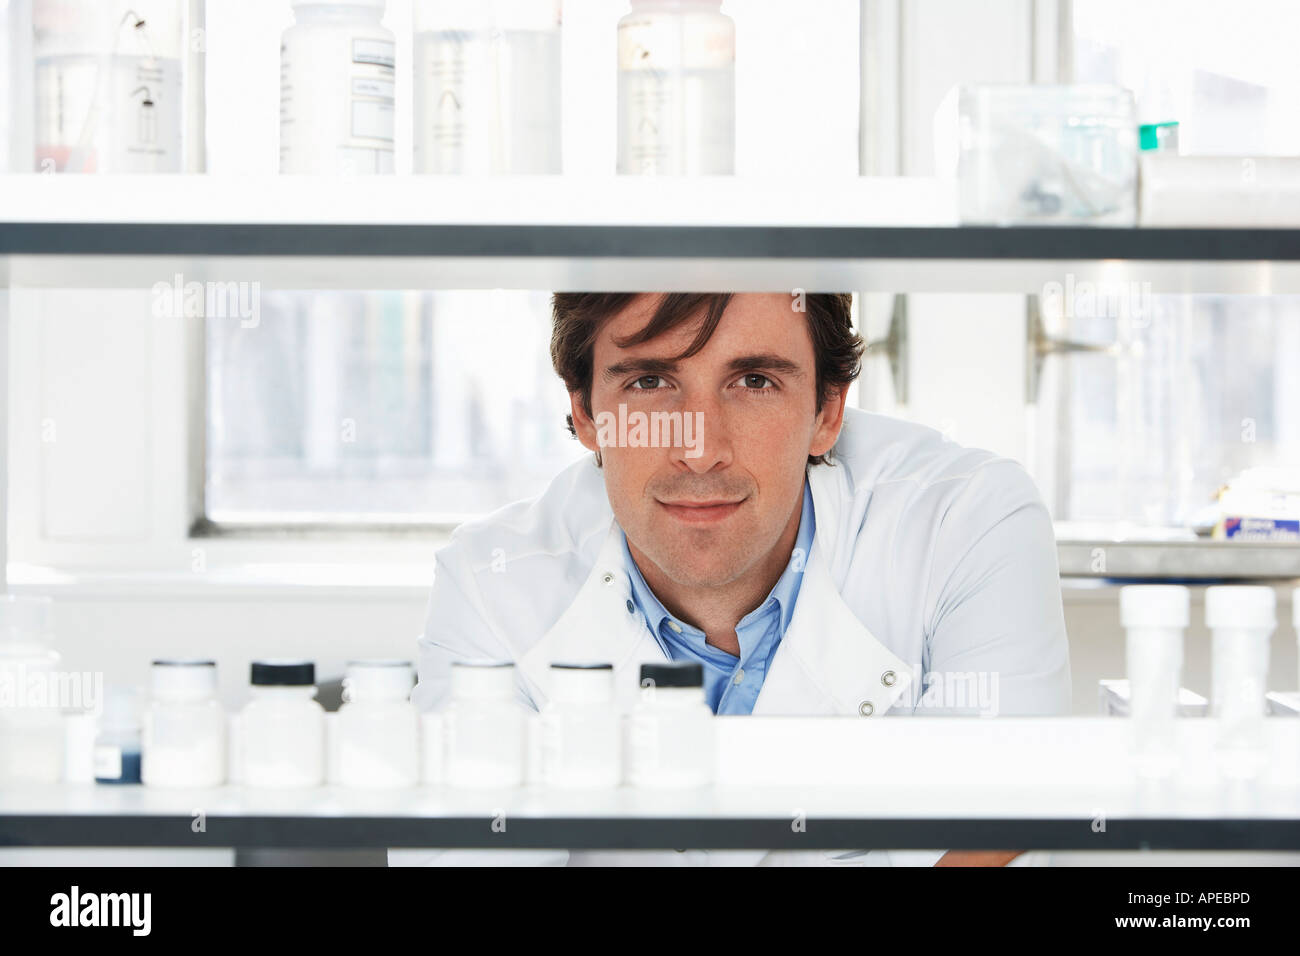 Lab Worker Looking Through Shelves - Stock Image